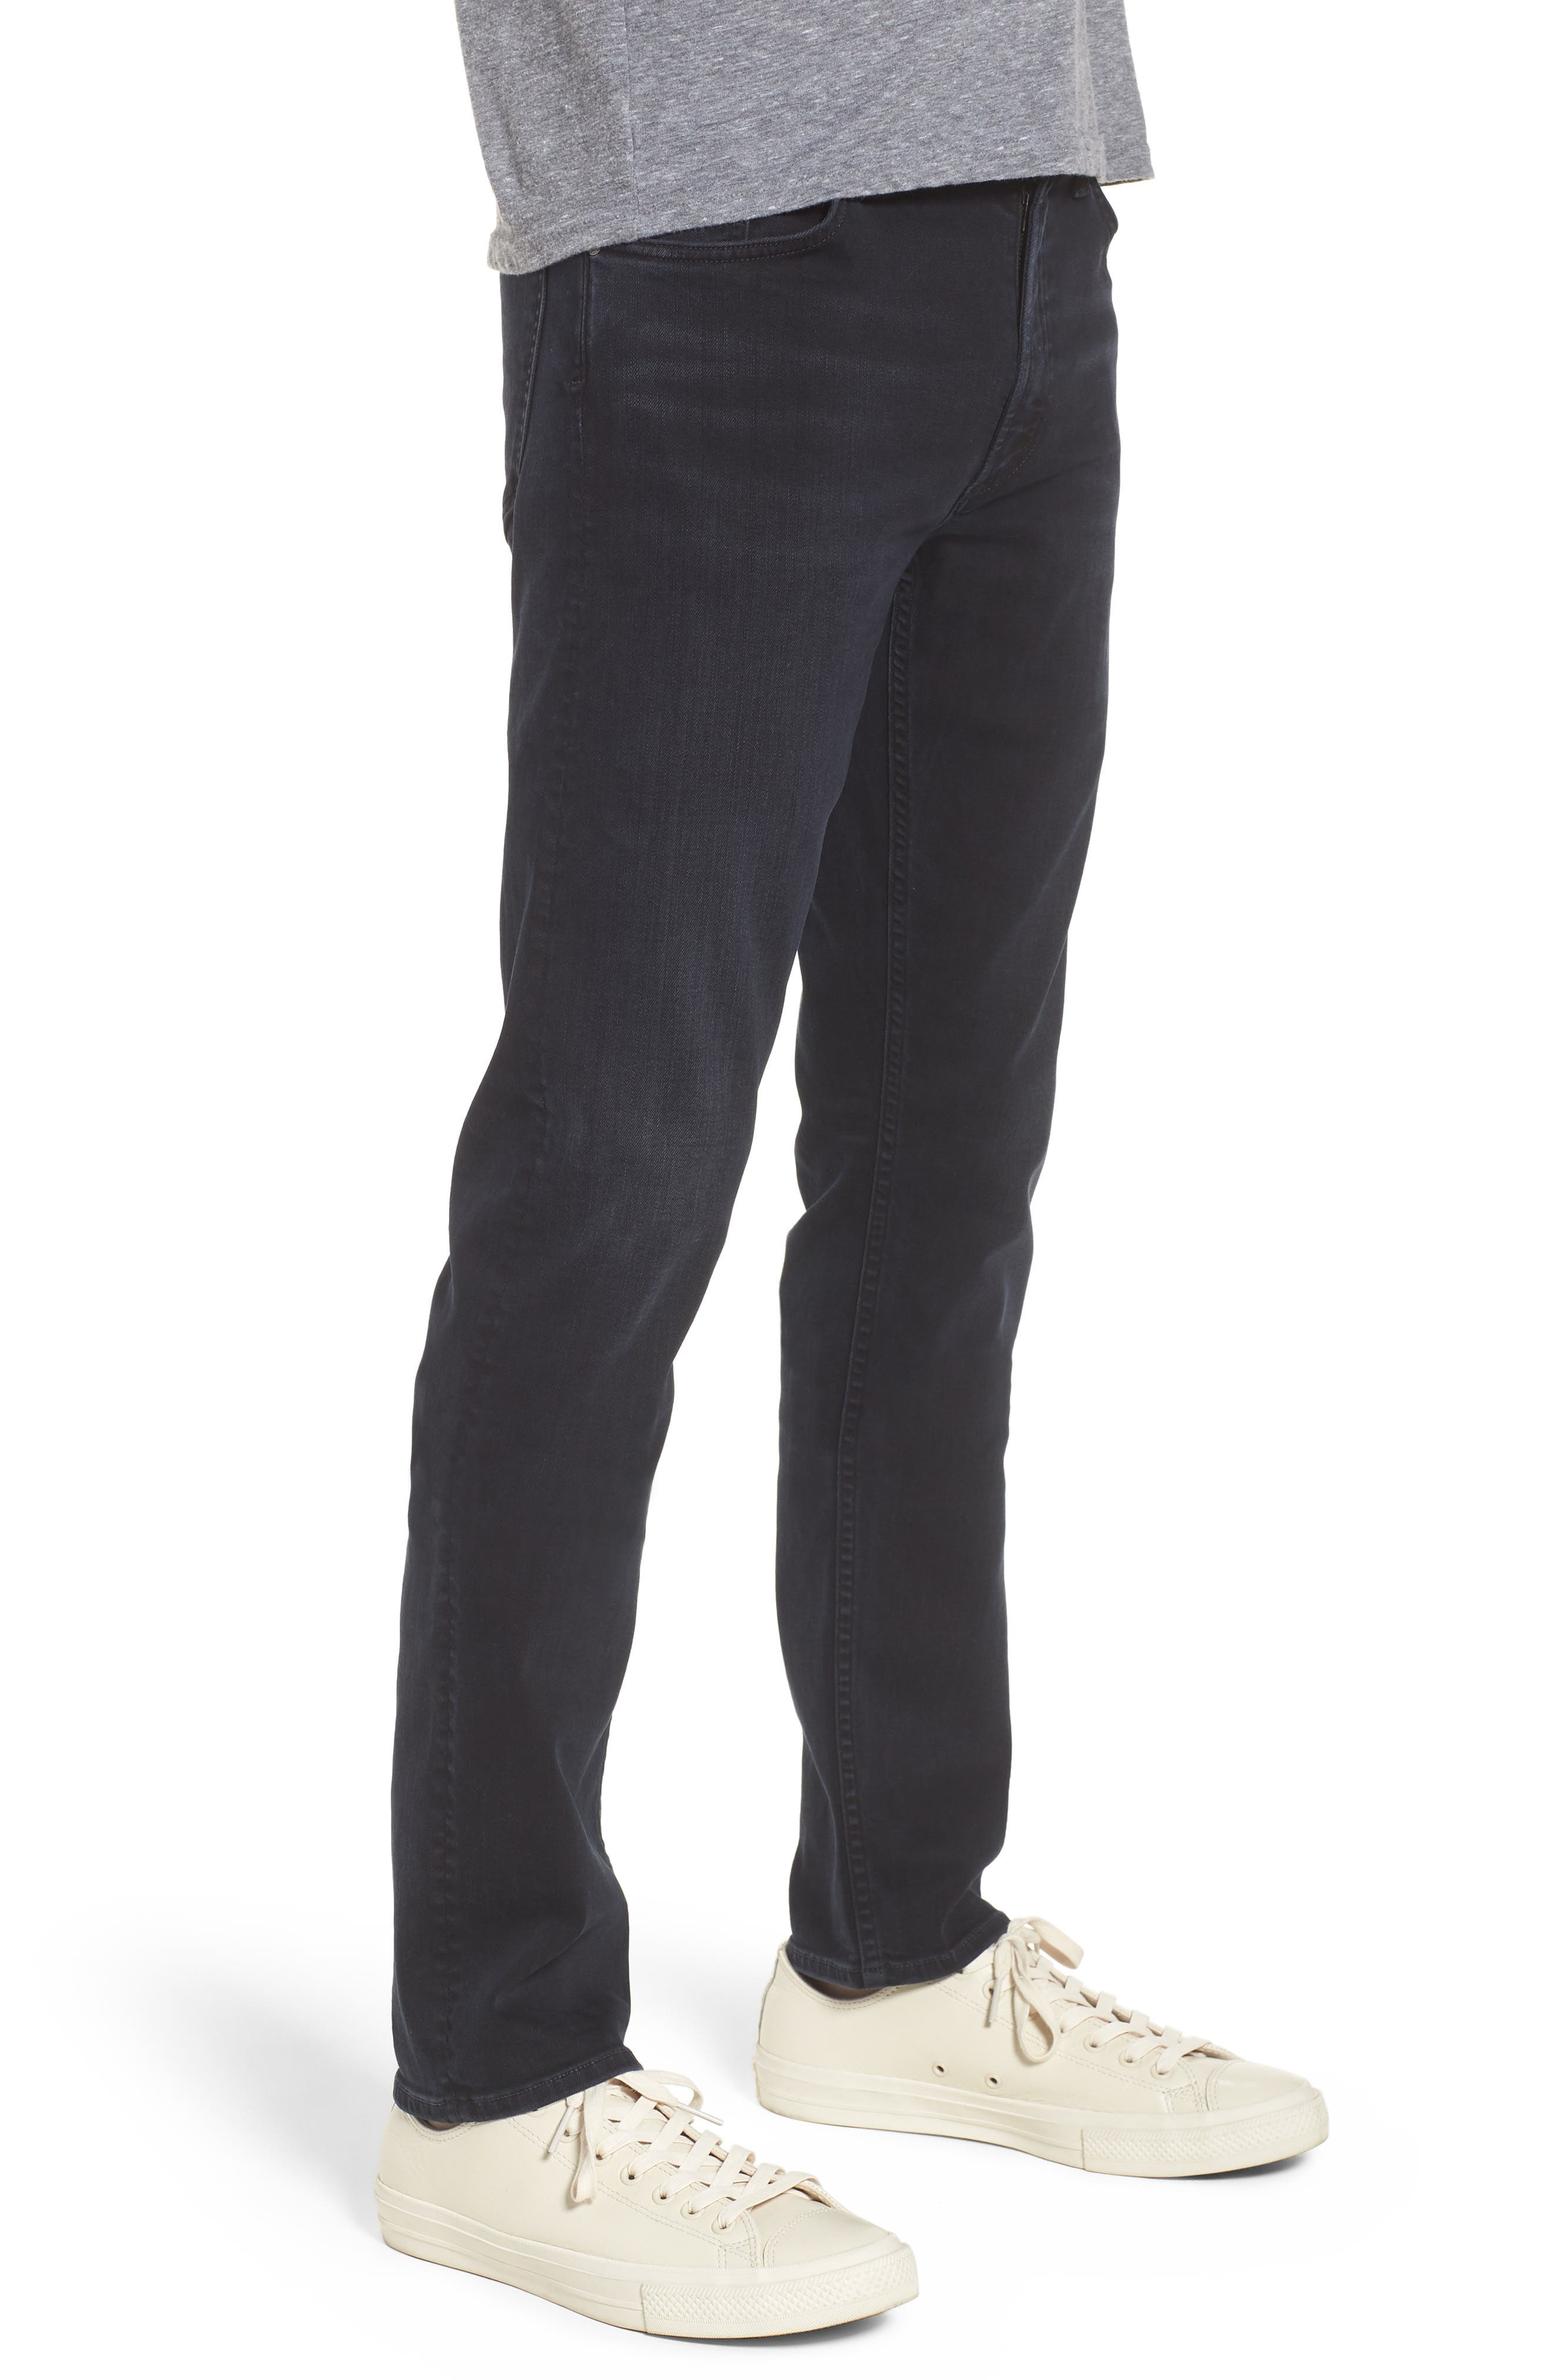 Bowery Slim Fit Jeans,                             Alternate thumbnail 3, color,                             Ink